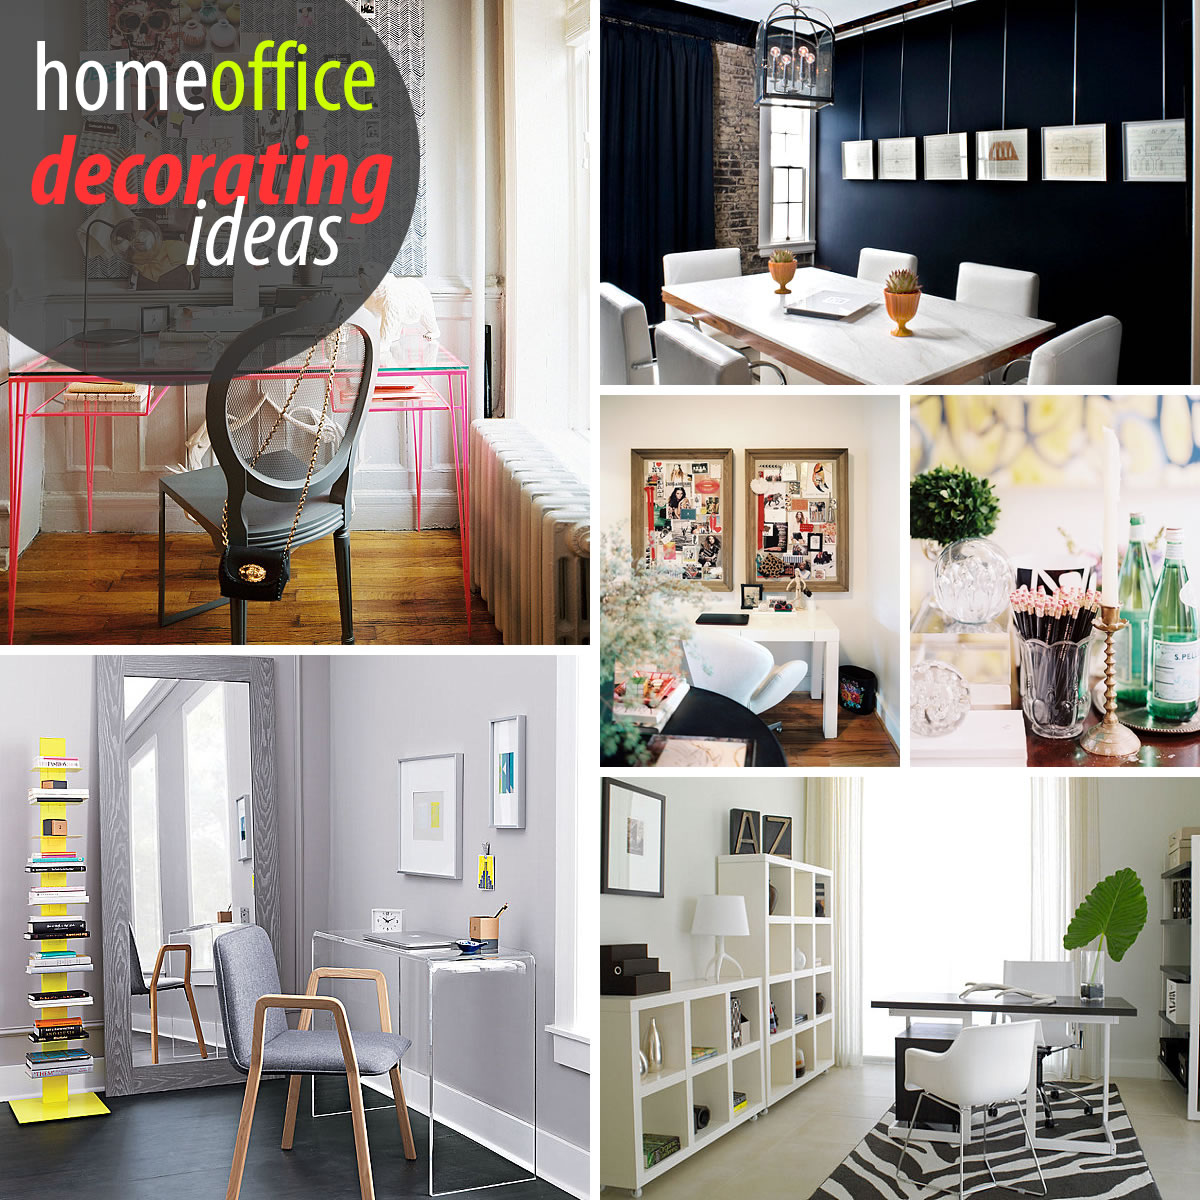 Creative home office decorating ideas - Creative home interior design ideas ...